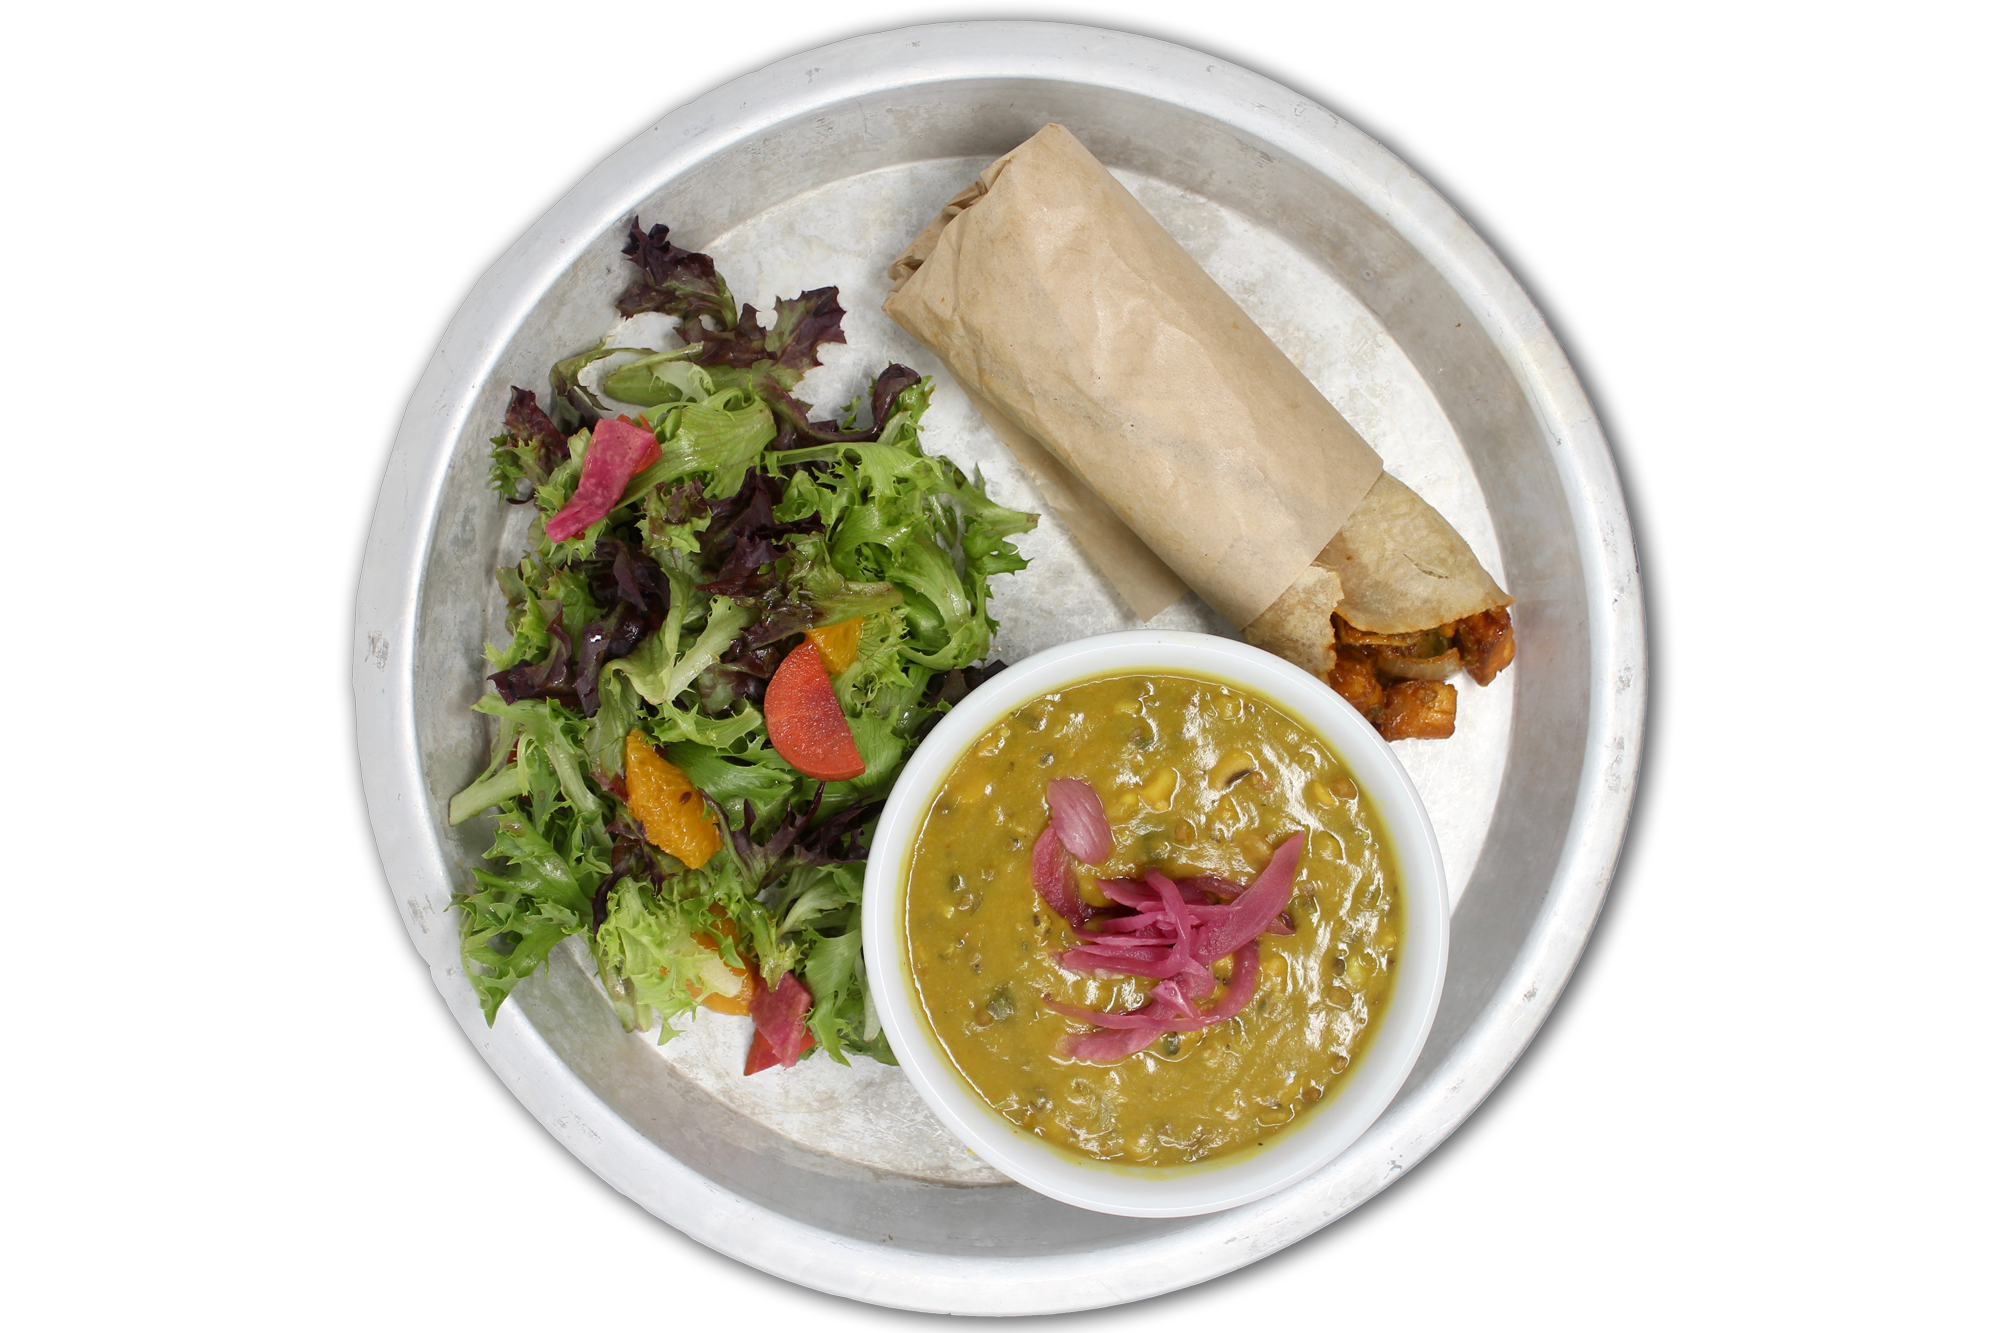 SOUP N' ROLL   choice of chicken, paneer (VG) or hungry planet plant protein (V) wrapped in a tortilla, daal lentil soup, local organic greensr